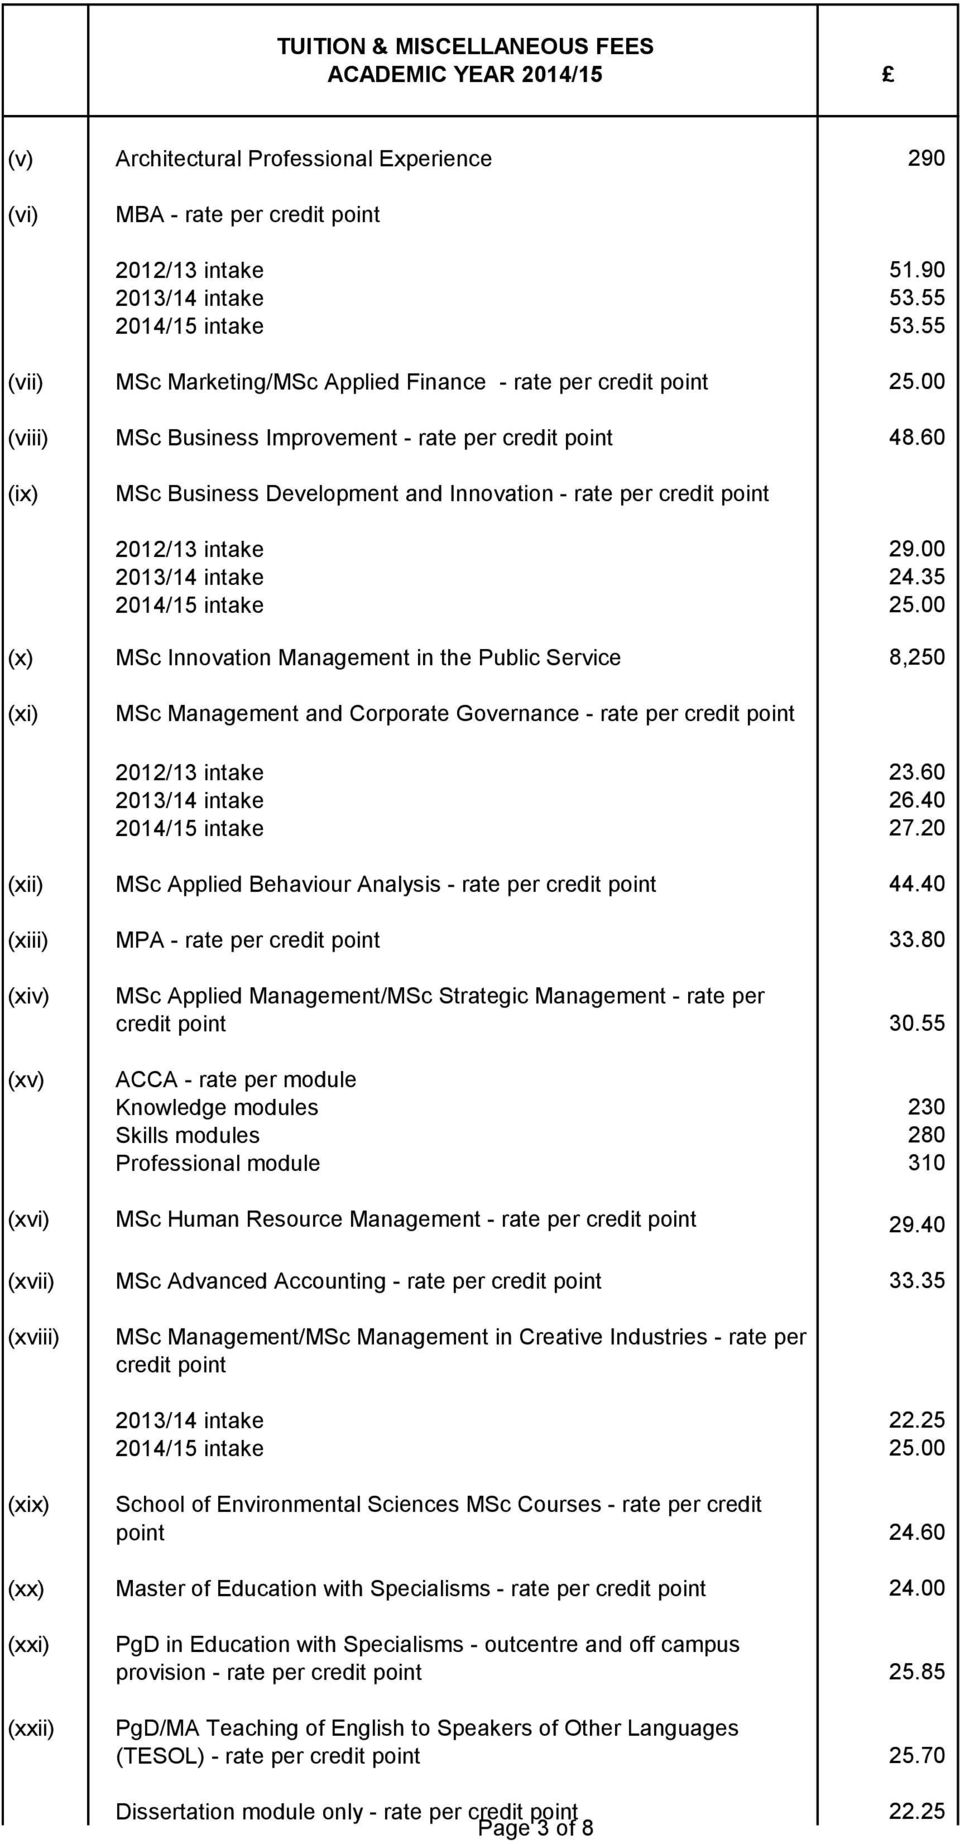 60 (ix) MSc Business Development and Innovation - rate per credit point 2012/13 intake 29.00 2013/14 intake 24.35 2014/15 intake 25.